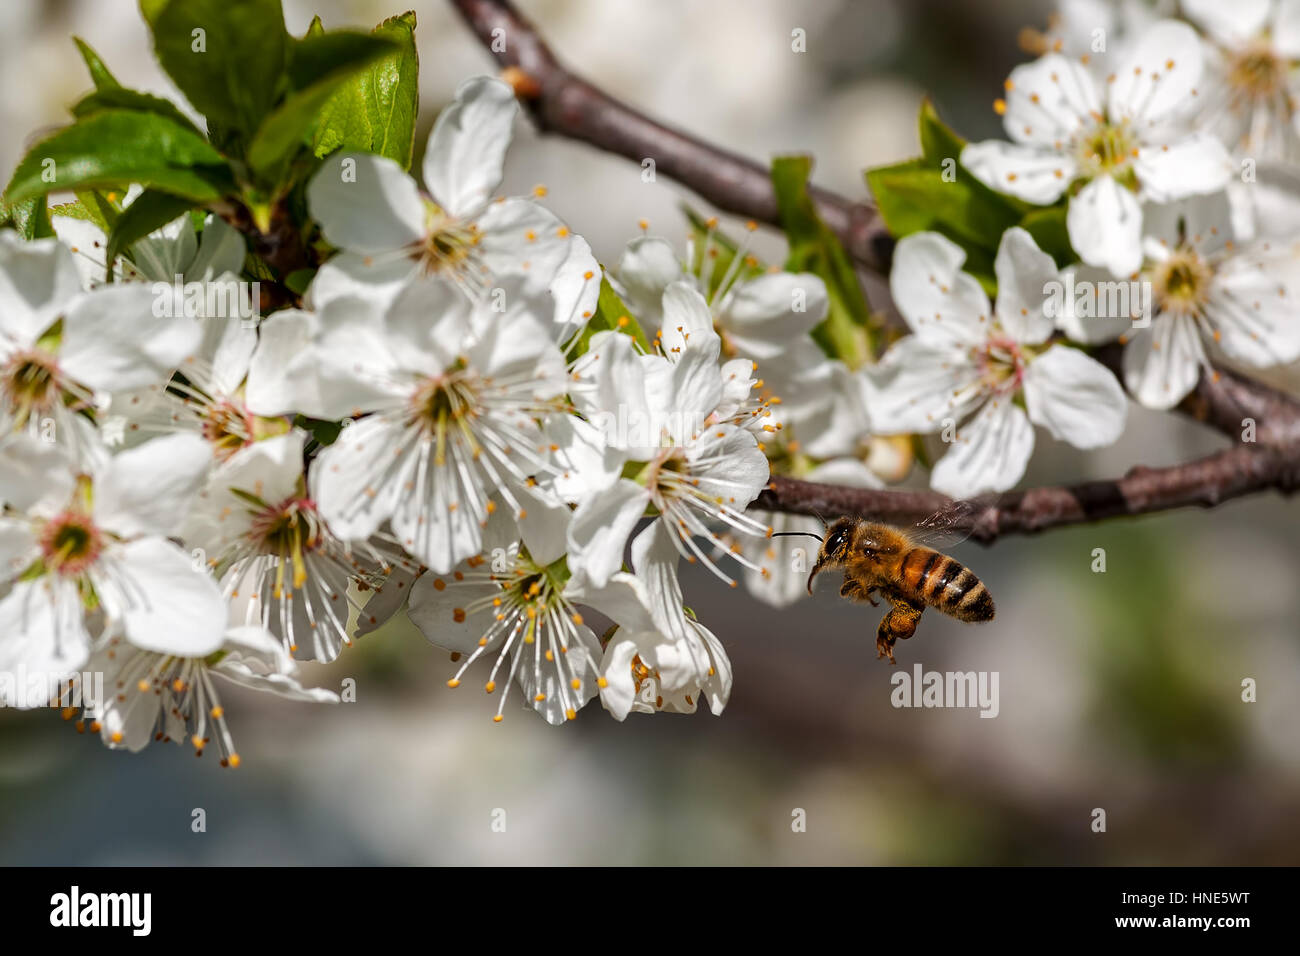 Bee flies towards white flowers on flowering trees to collect pollen. Stock Photo